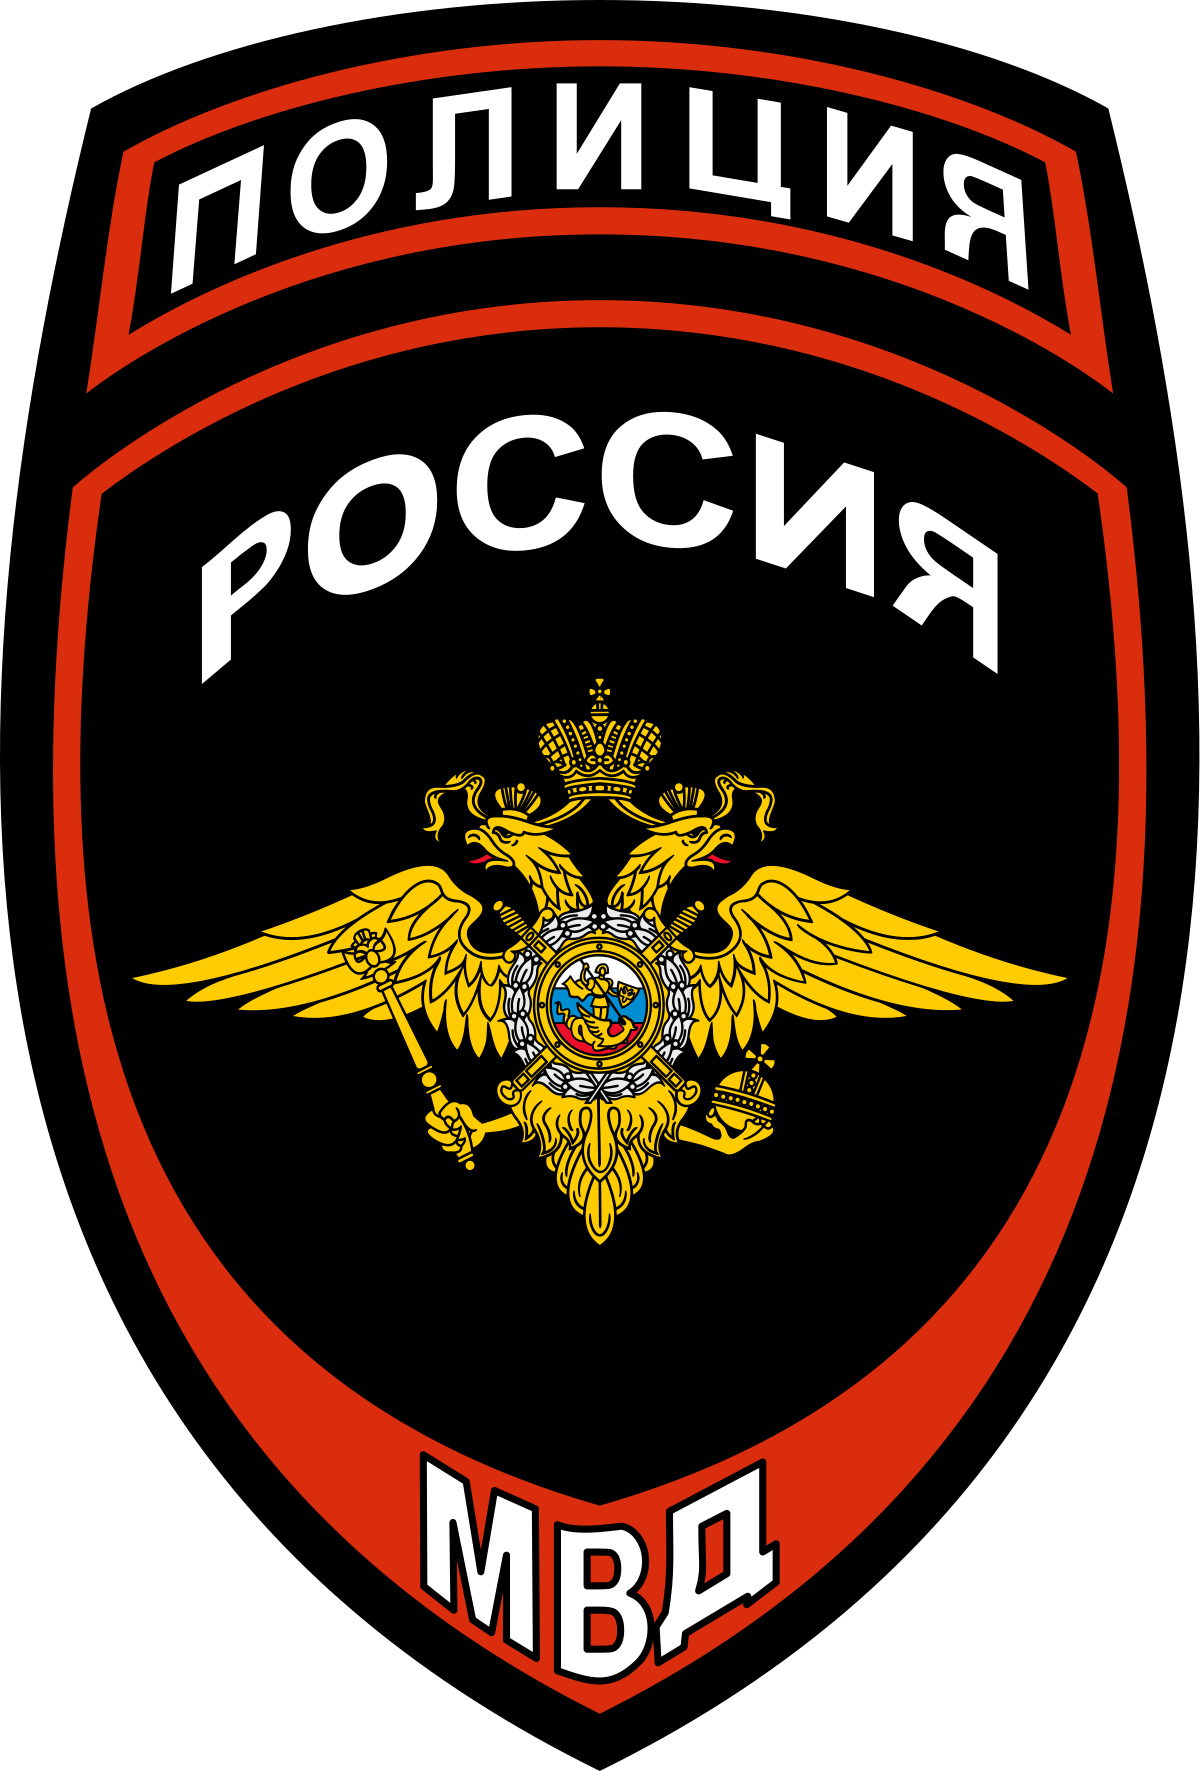 Policeman car clipart banner freeuse library Police of Russia - Wikipedia banner freeuse library